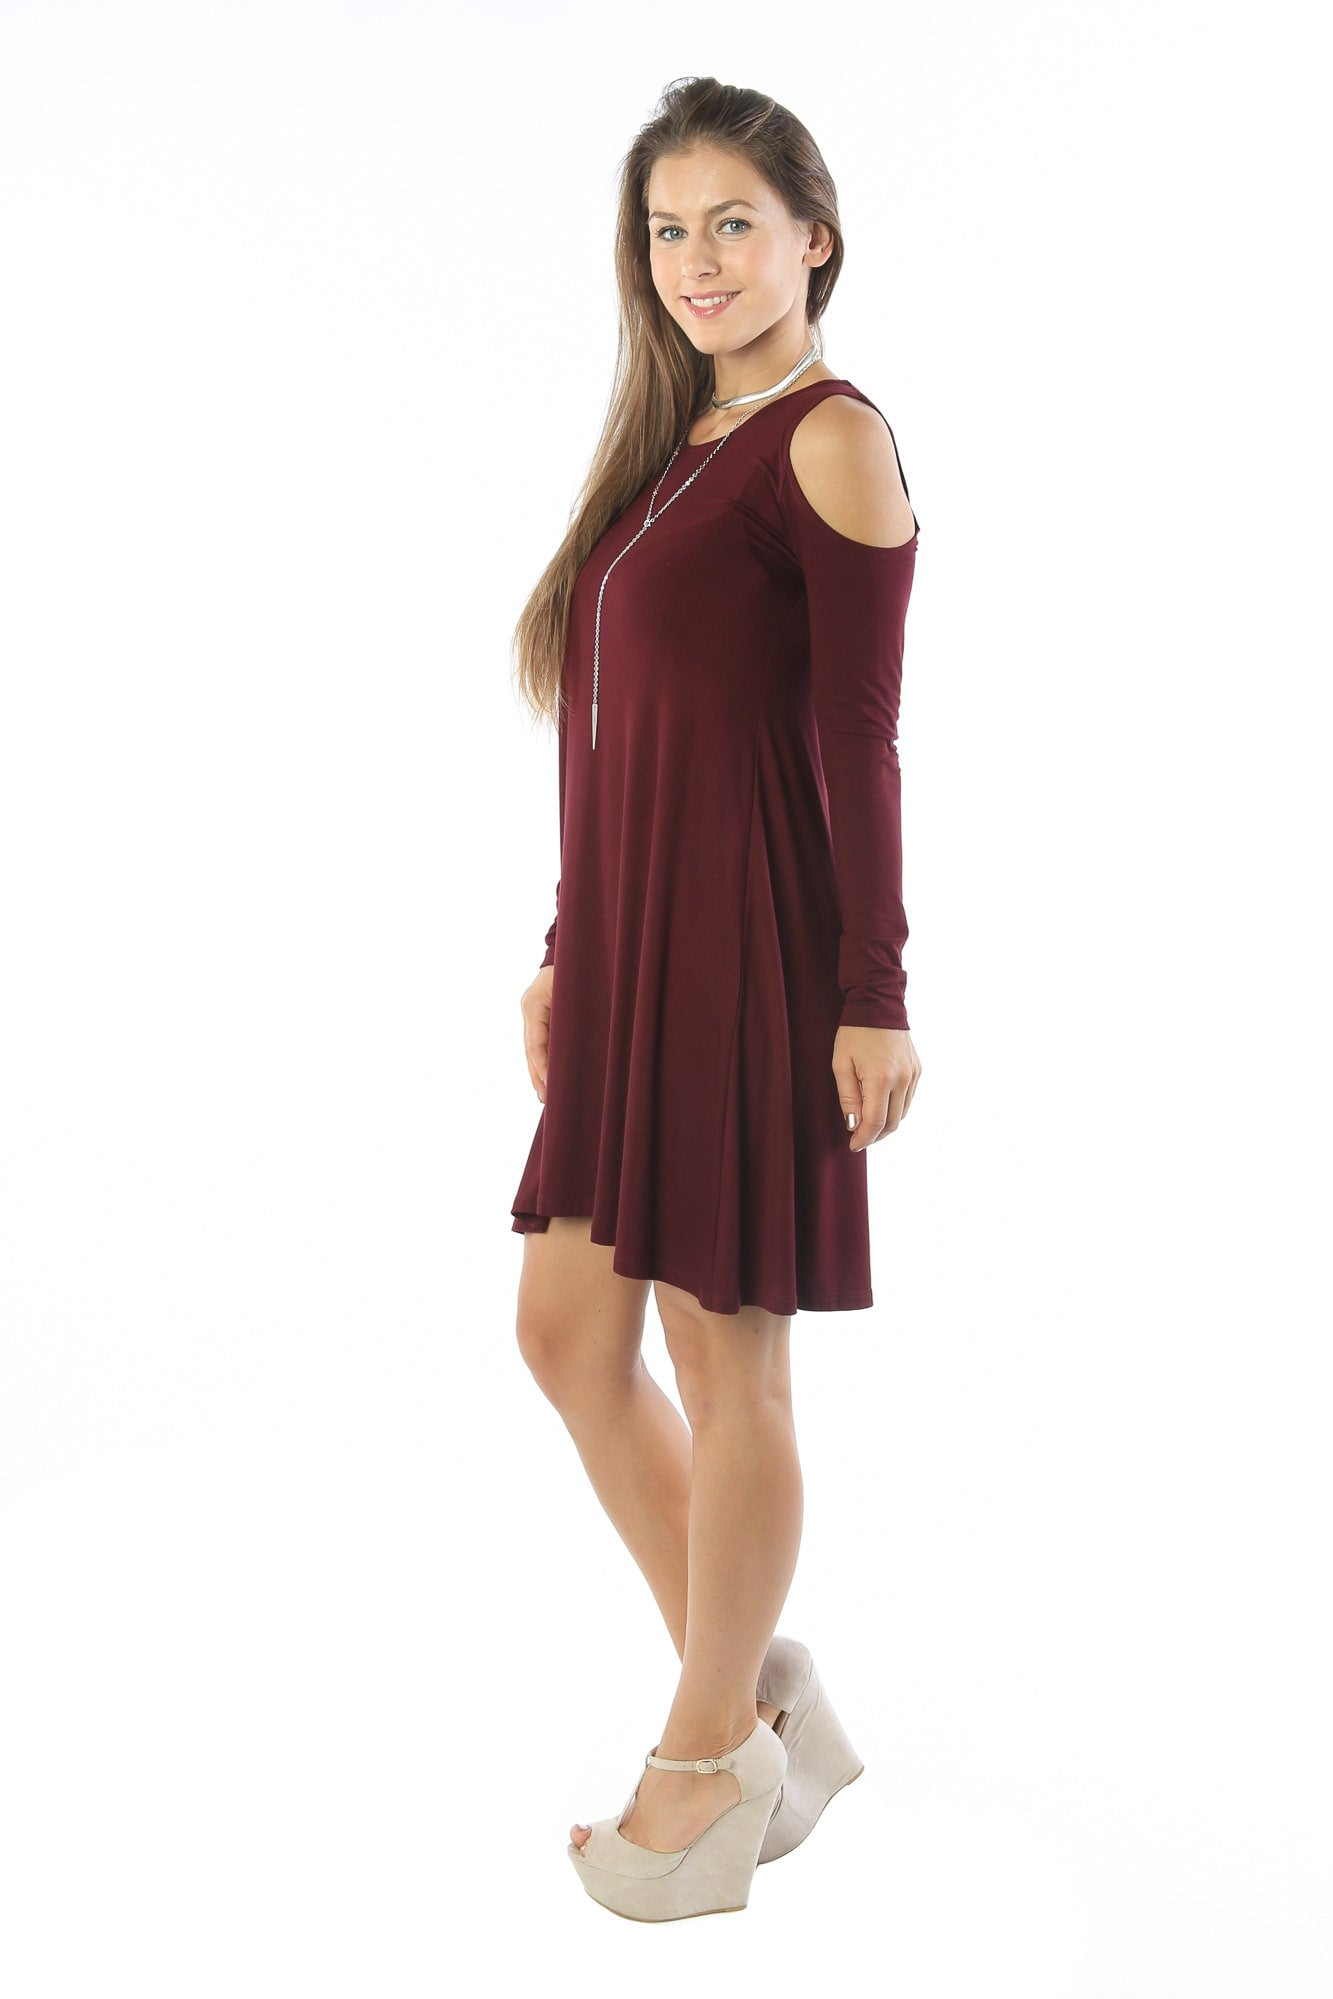 Open Shoulder Tunic Shift Dress Swing Top Shirt Blouse Flowy Long Sleeve - MADE IN USA - All Sizes + Colors